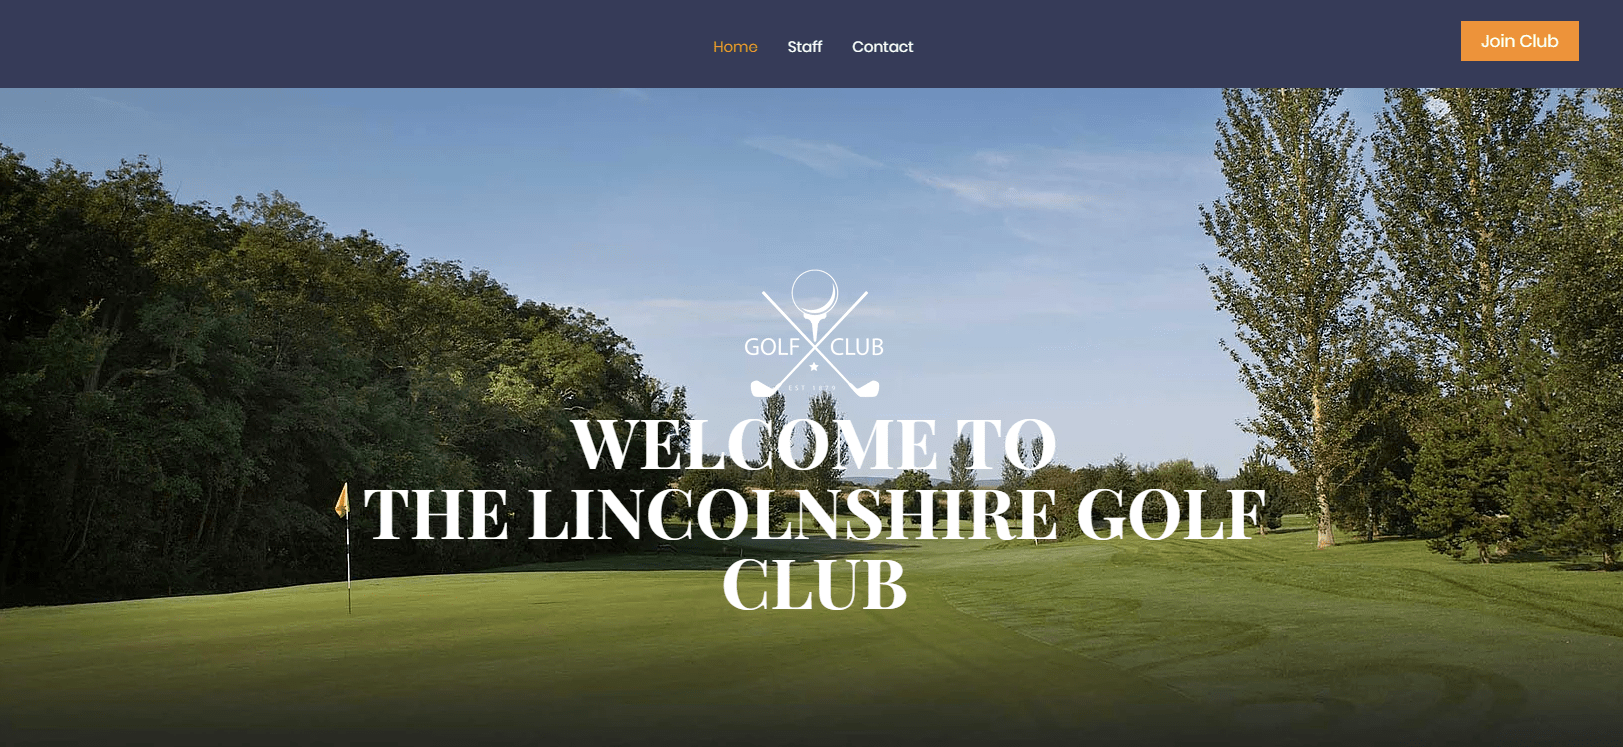 Lincolnshire Golf Club